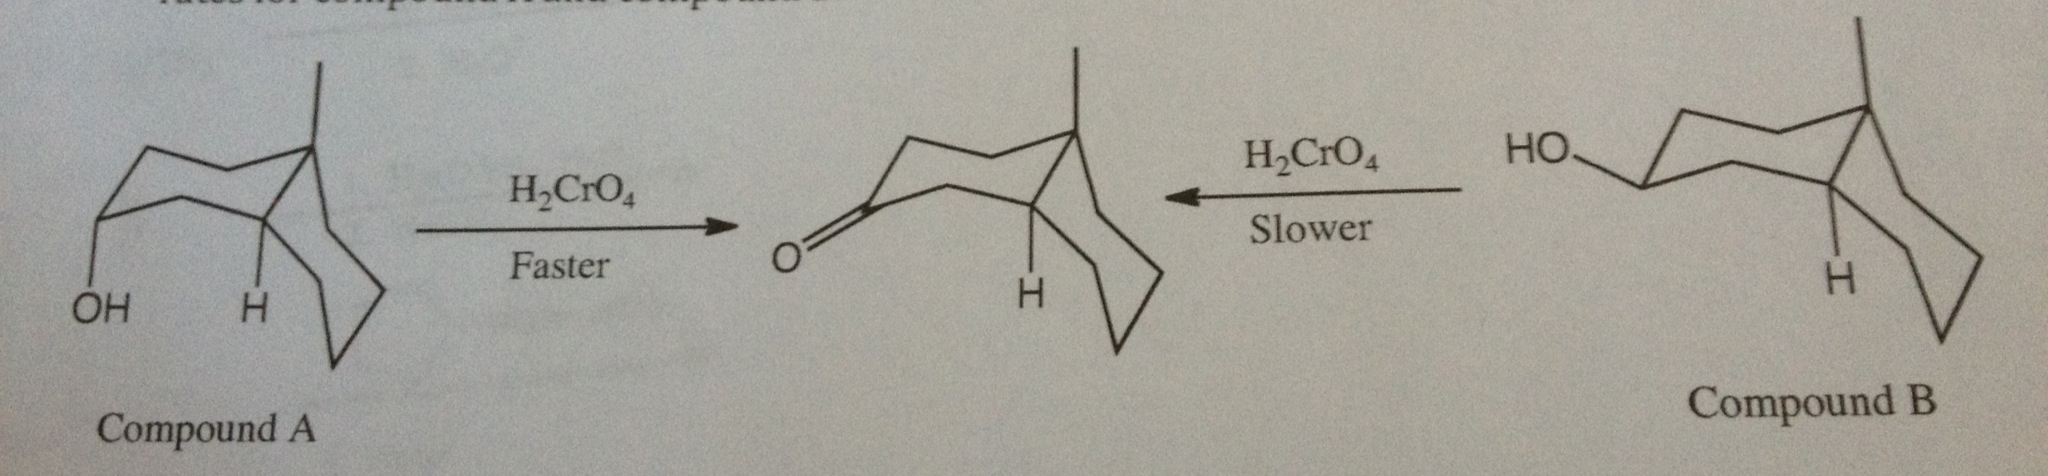 Chromic Acid (H2CrO4) oxidation of an alcohol occu